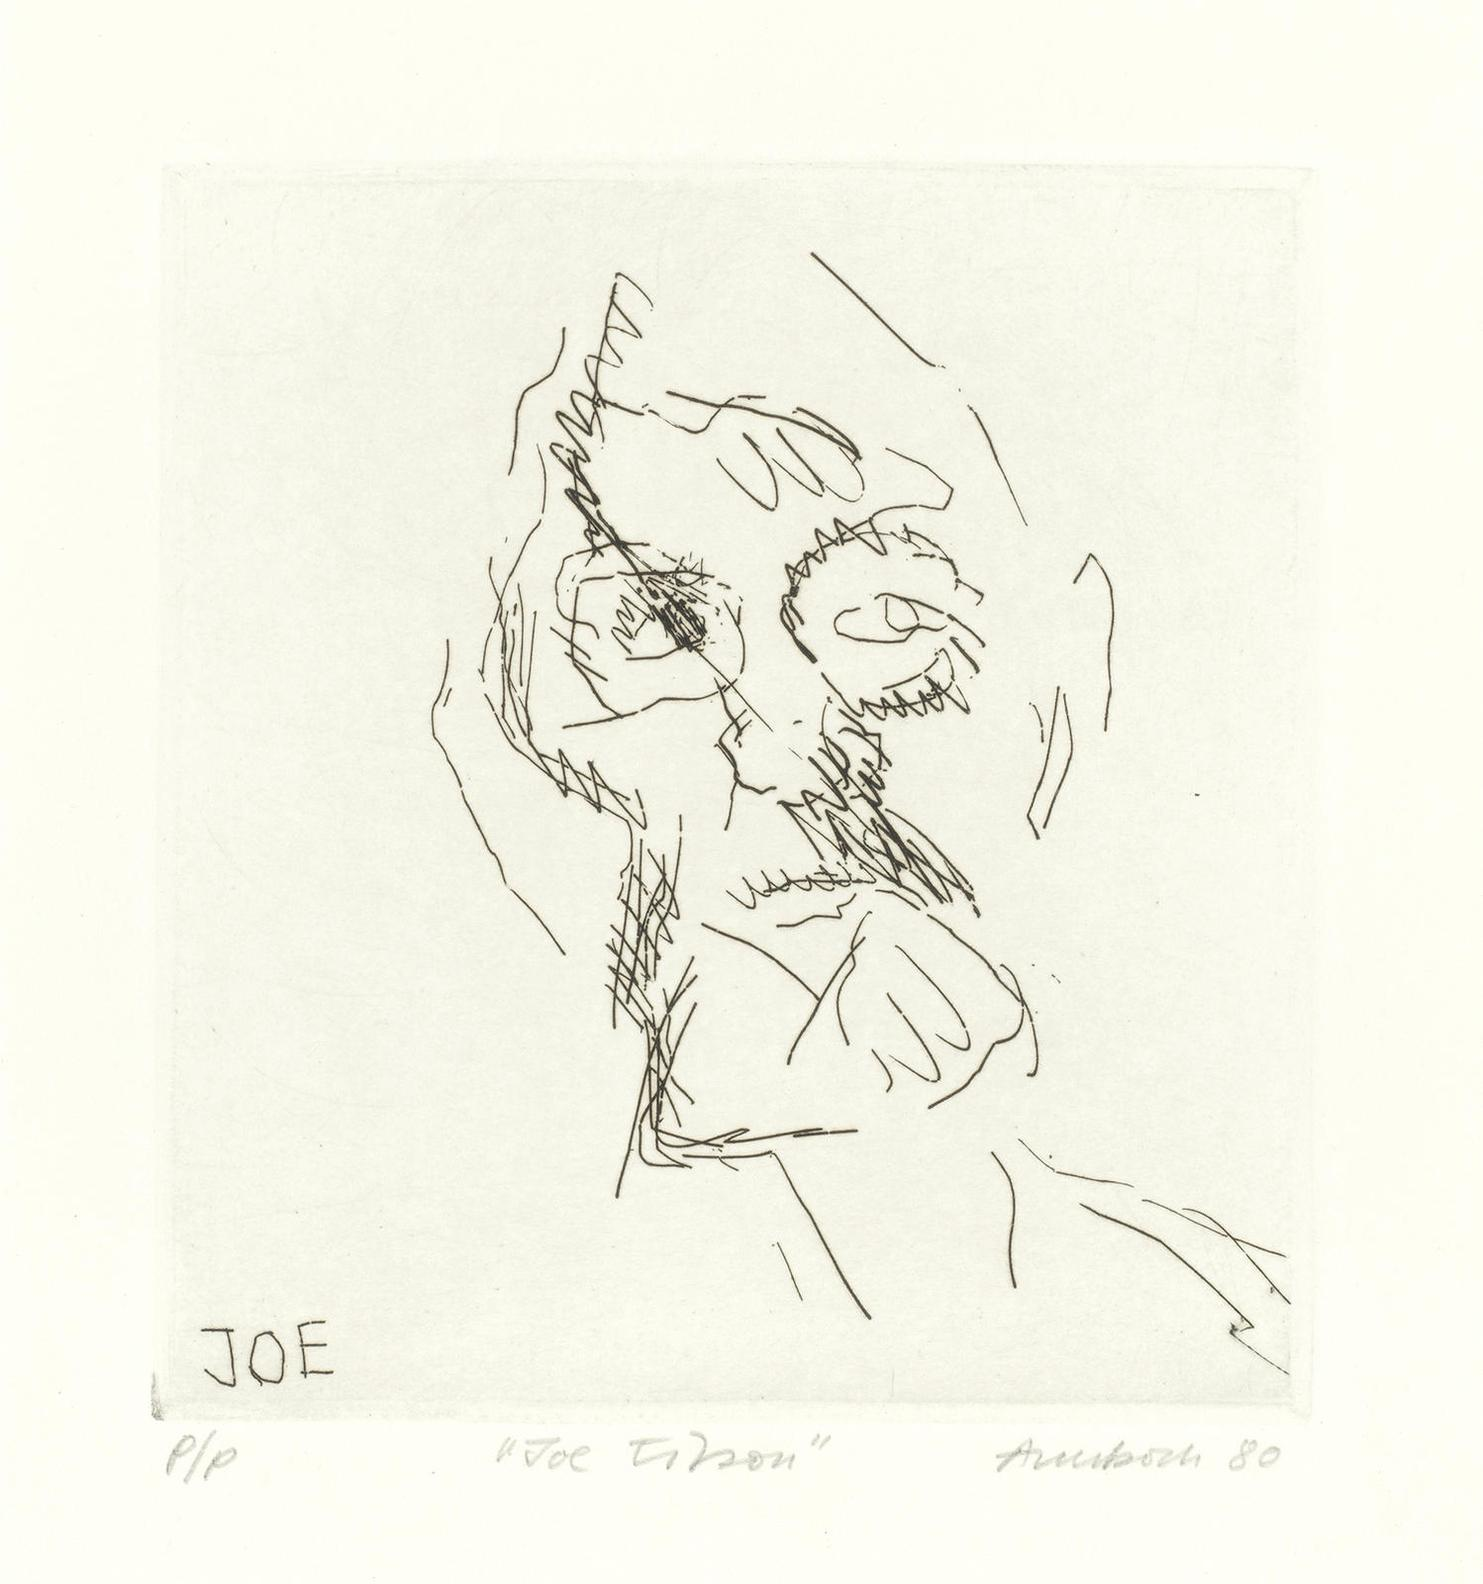 Frank Auerbach-Joe Tilson, From Six Etchings Of Heads (Marlborough Graphics 9)-1980